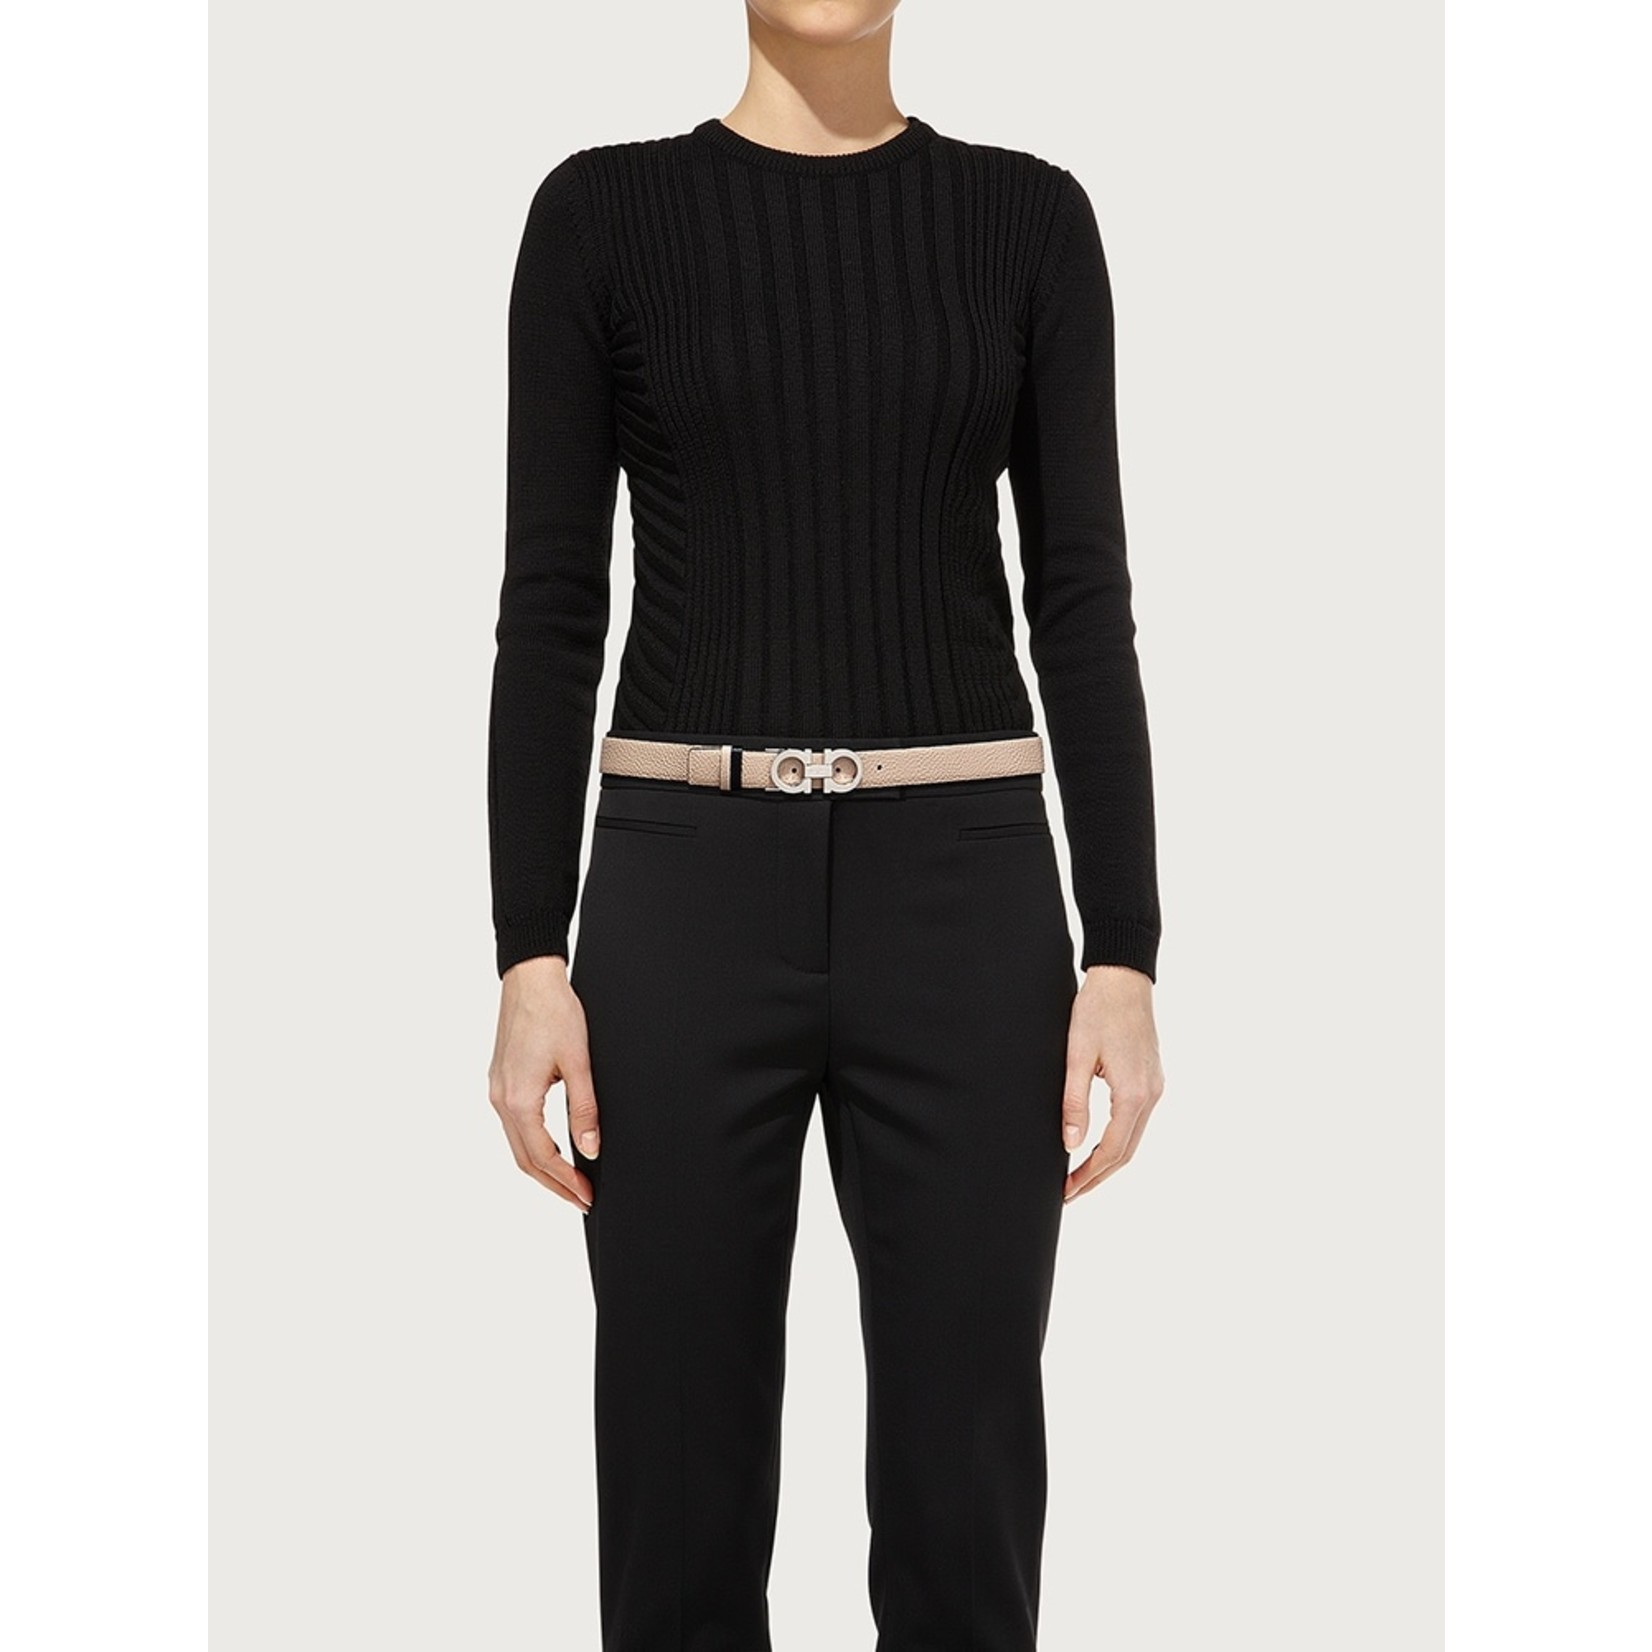 SALVATORE FERRAGAMO SALVATORE FERRAGAMO REVERSIBLE GANCINI WOMEN'S BELT BLACK/STONE - 724804